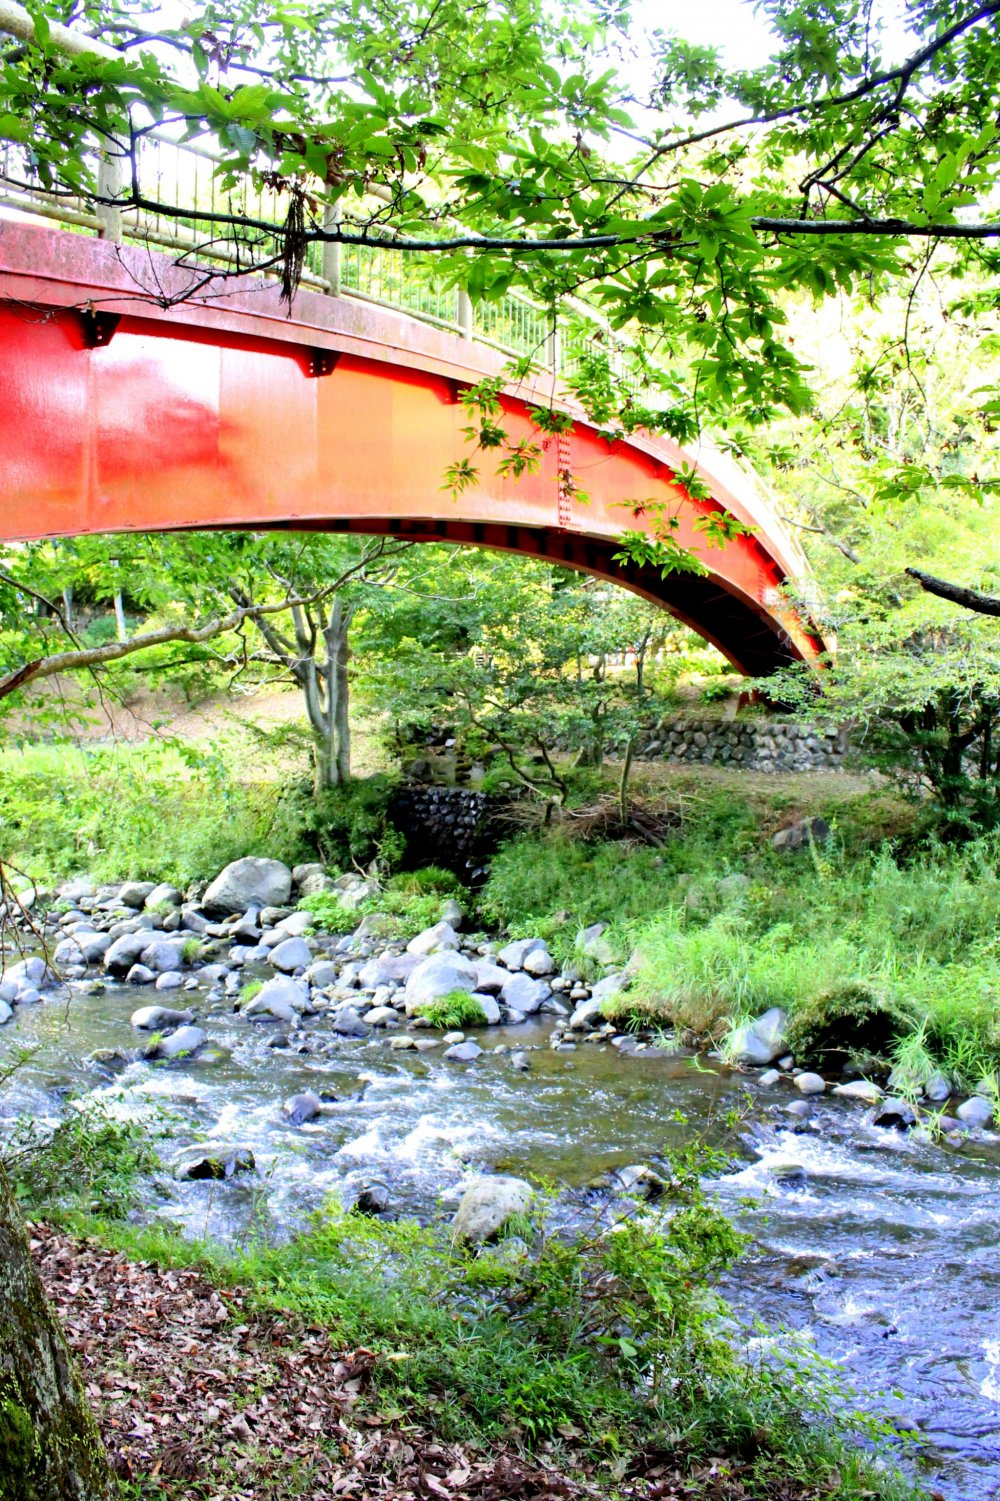 The red bridge over the shallow rushing waters gives a perfect contrast to the green surroundings